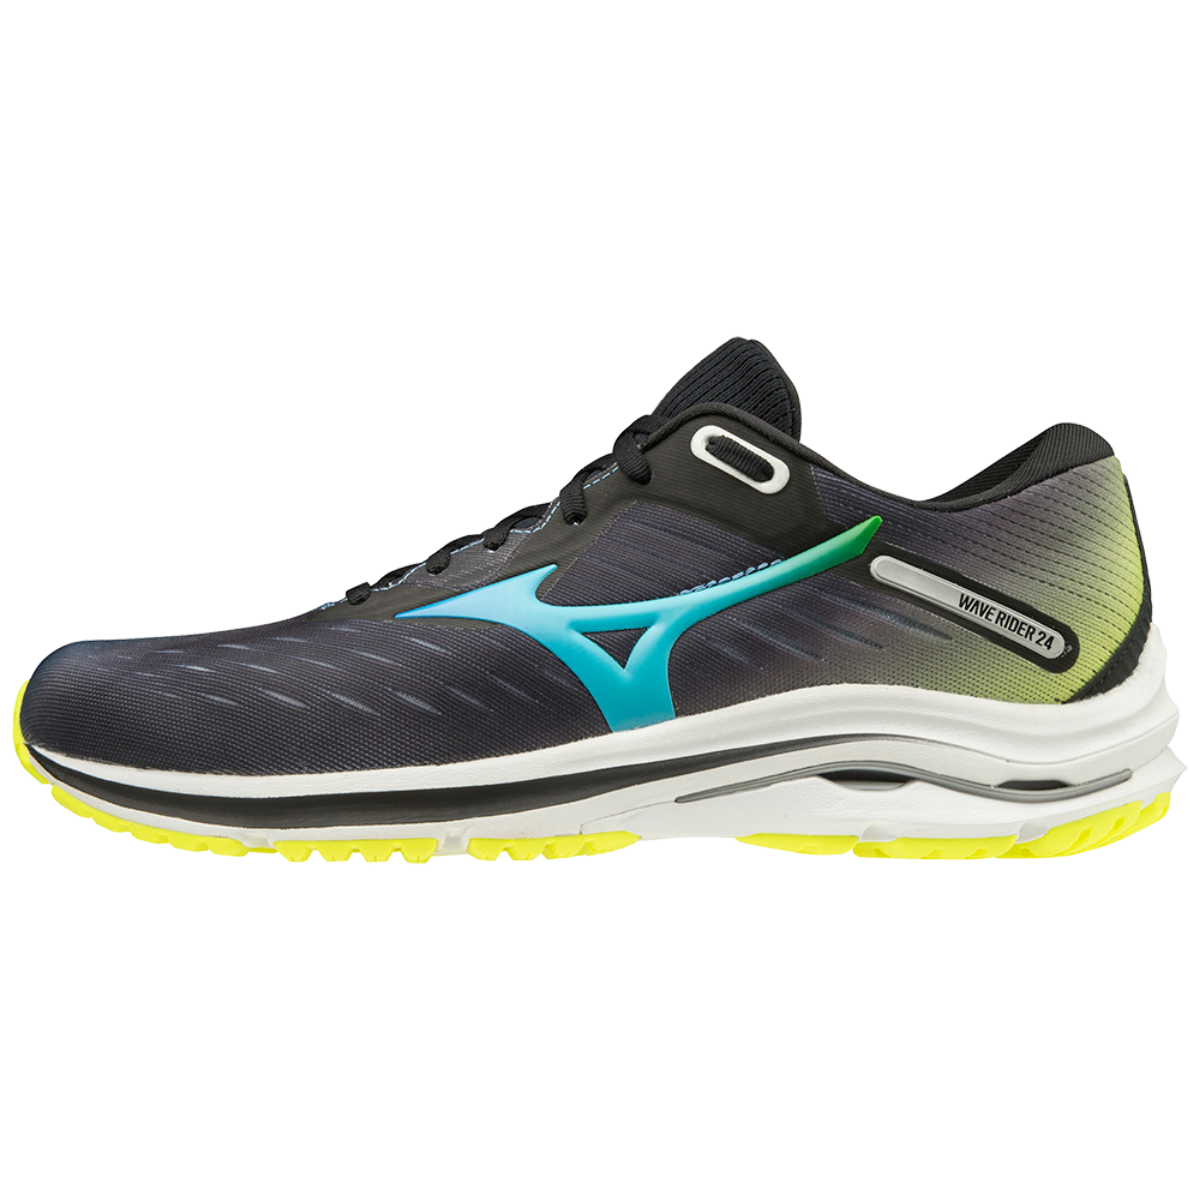 WAVE RIDER 24 UNISEX Black / Blue Atoll / Safety Yellow